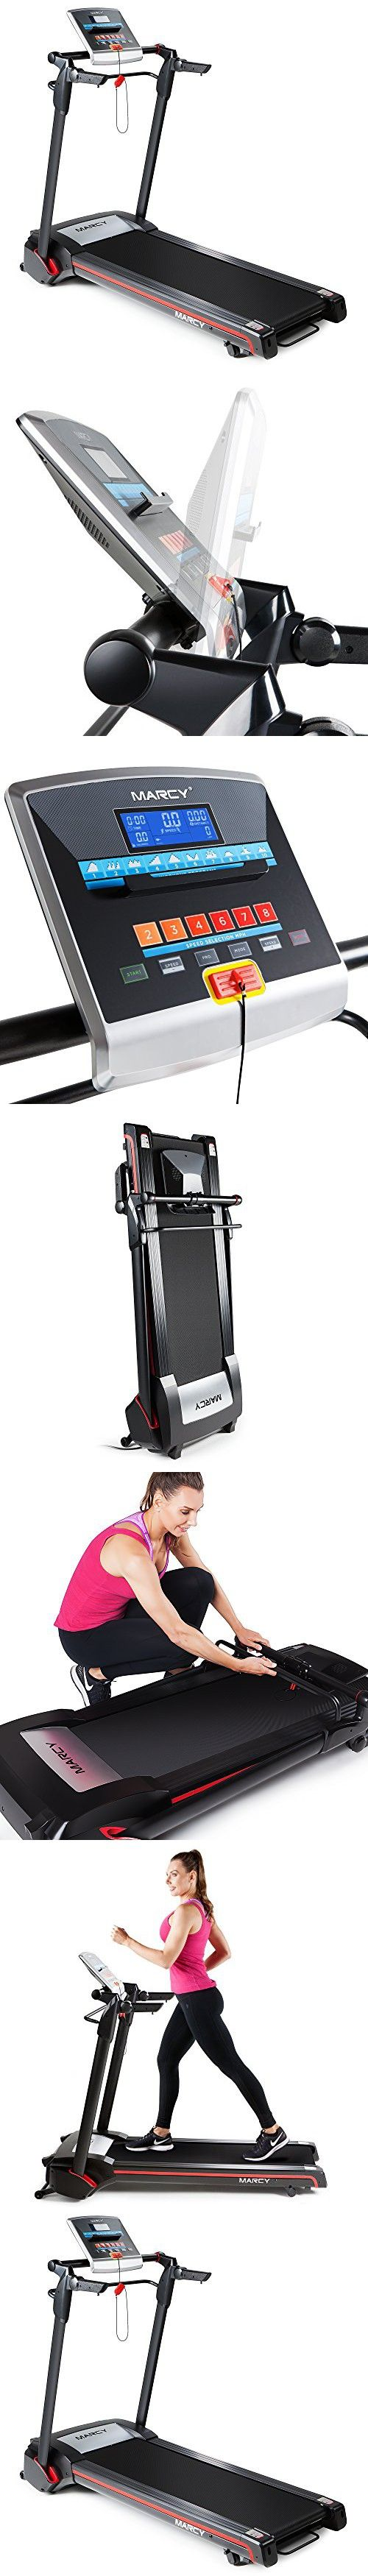 Marcy Easy Folding Motorized Treadmill / Pre Assembled Electric Running Machine JX-651BW Easy Folding Motorized Treadmill / Pre Assembled Electric Running Machine